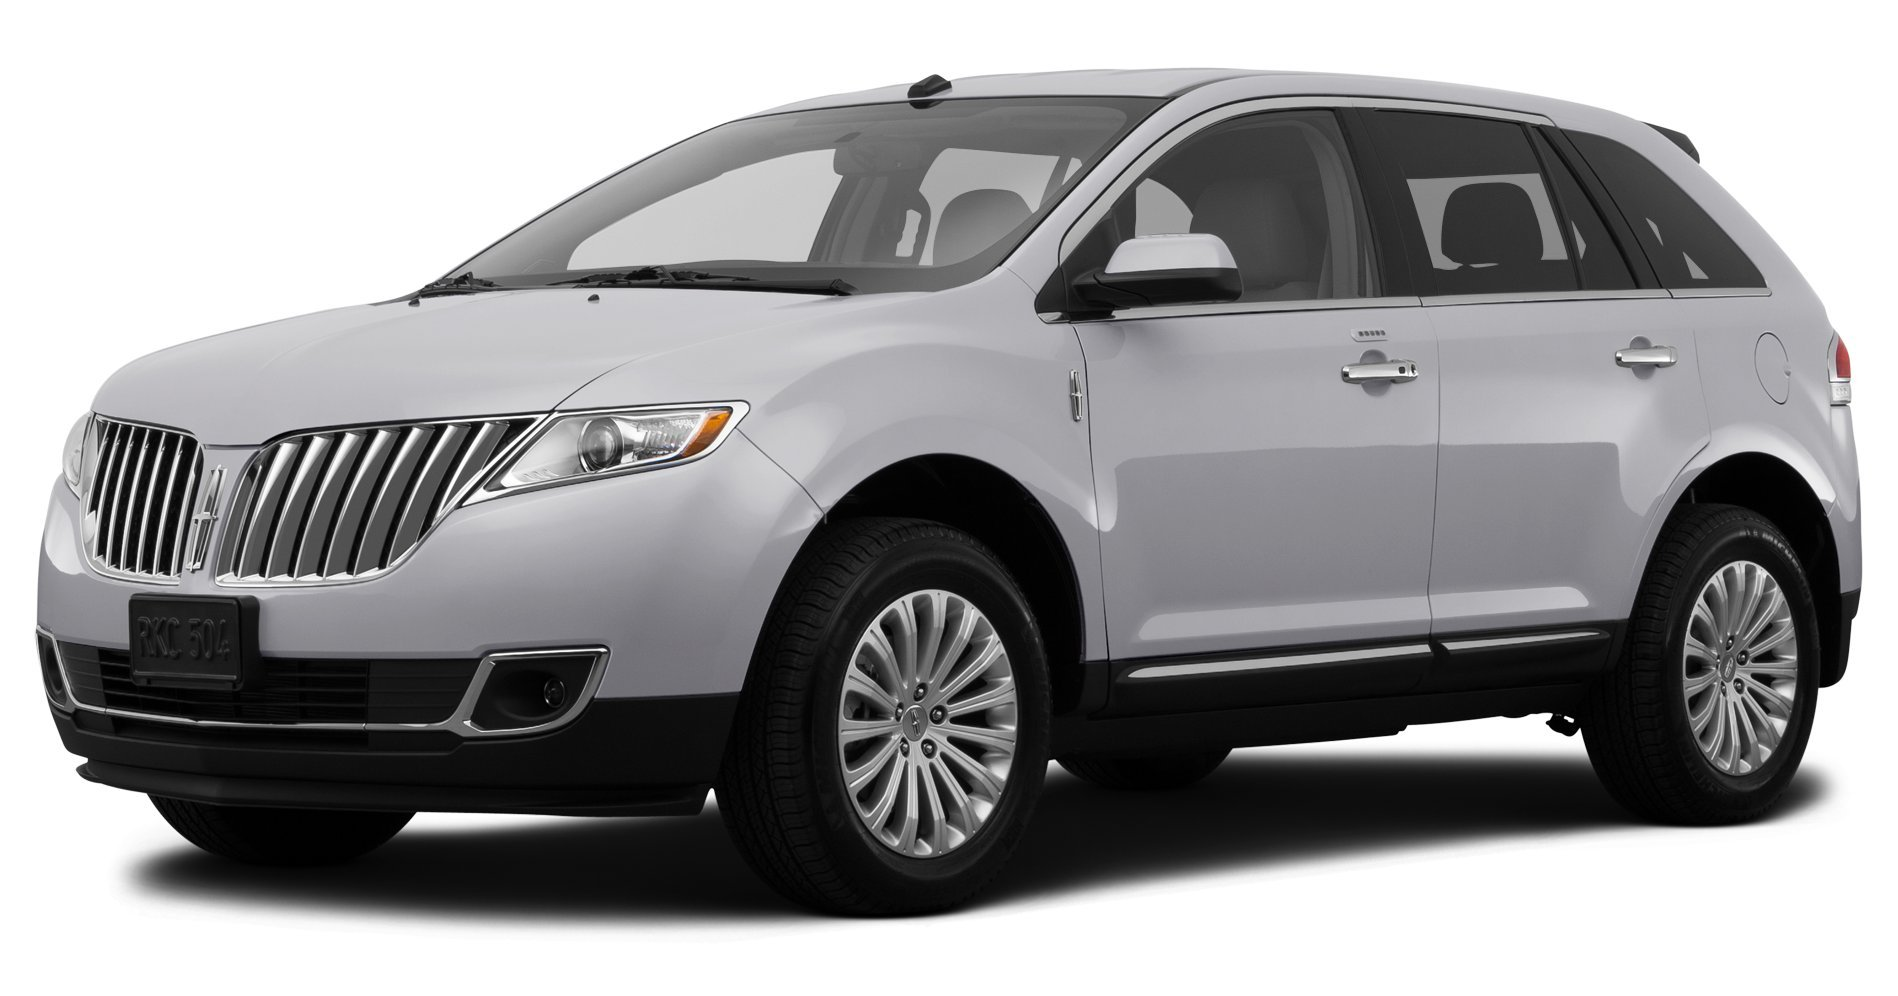 base camera mkx loaded cars navi rear in ontario used lincoln for scarborough sale